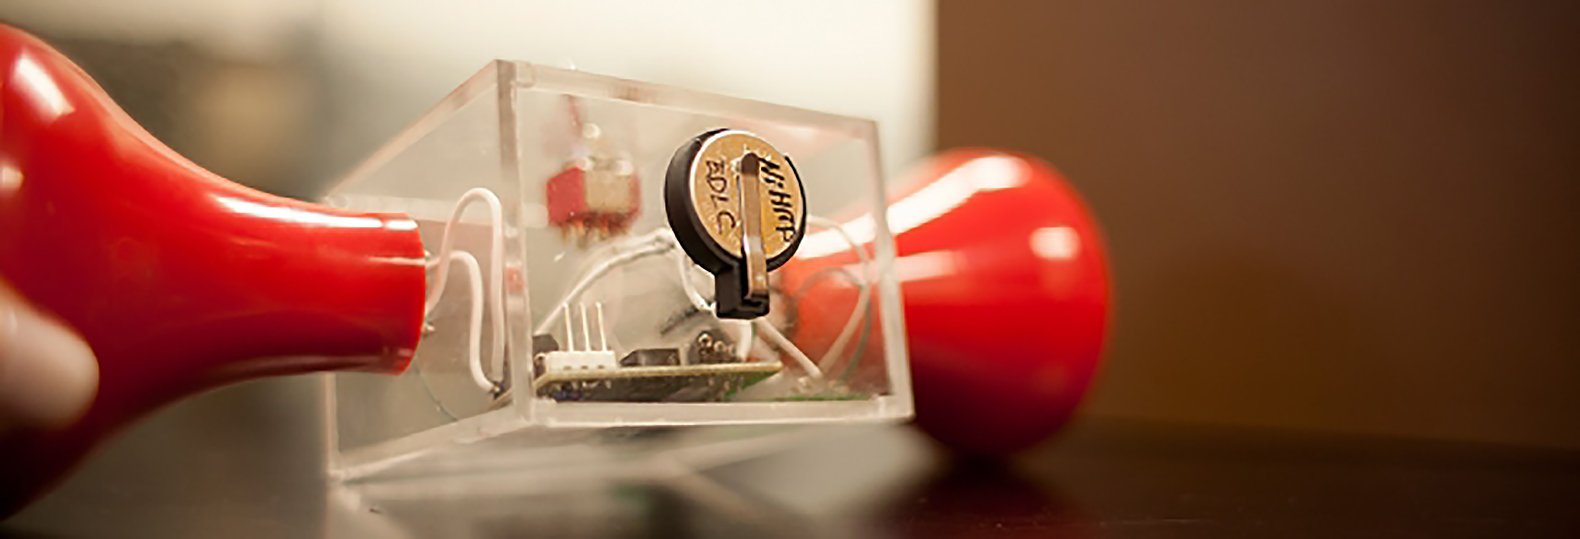 MIT's new carbon-free supercapacitor could revolutionize the way we store power